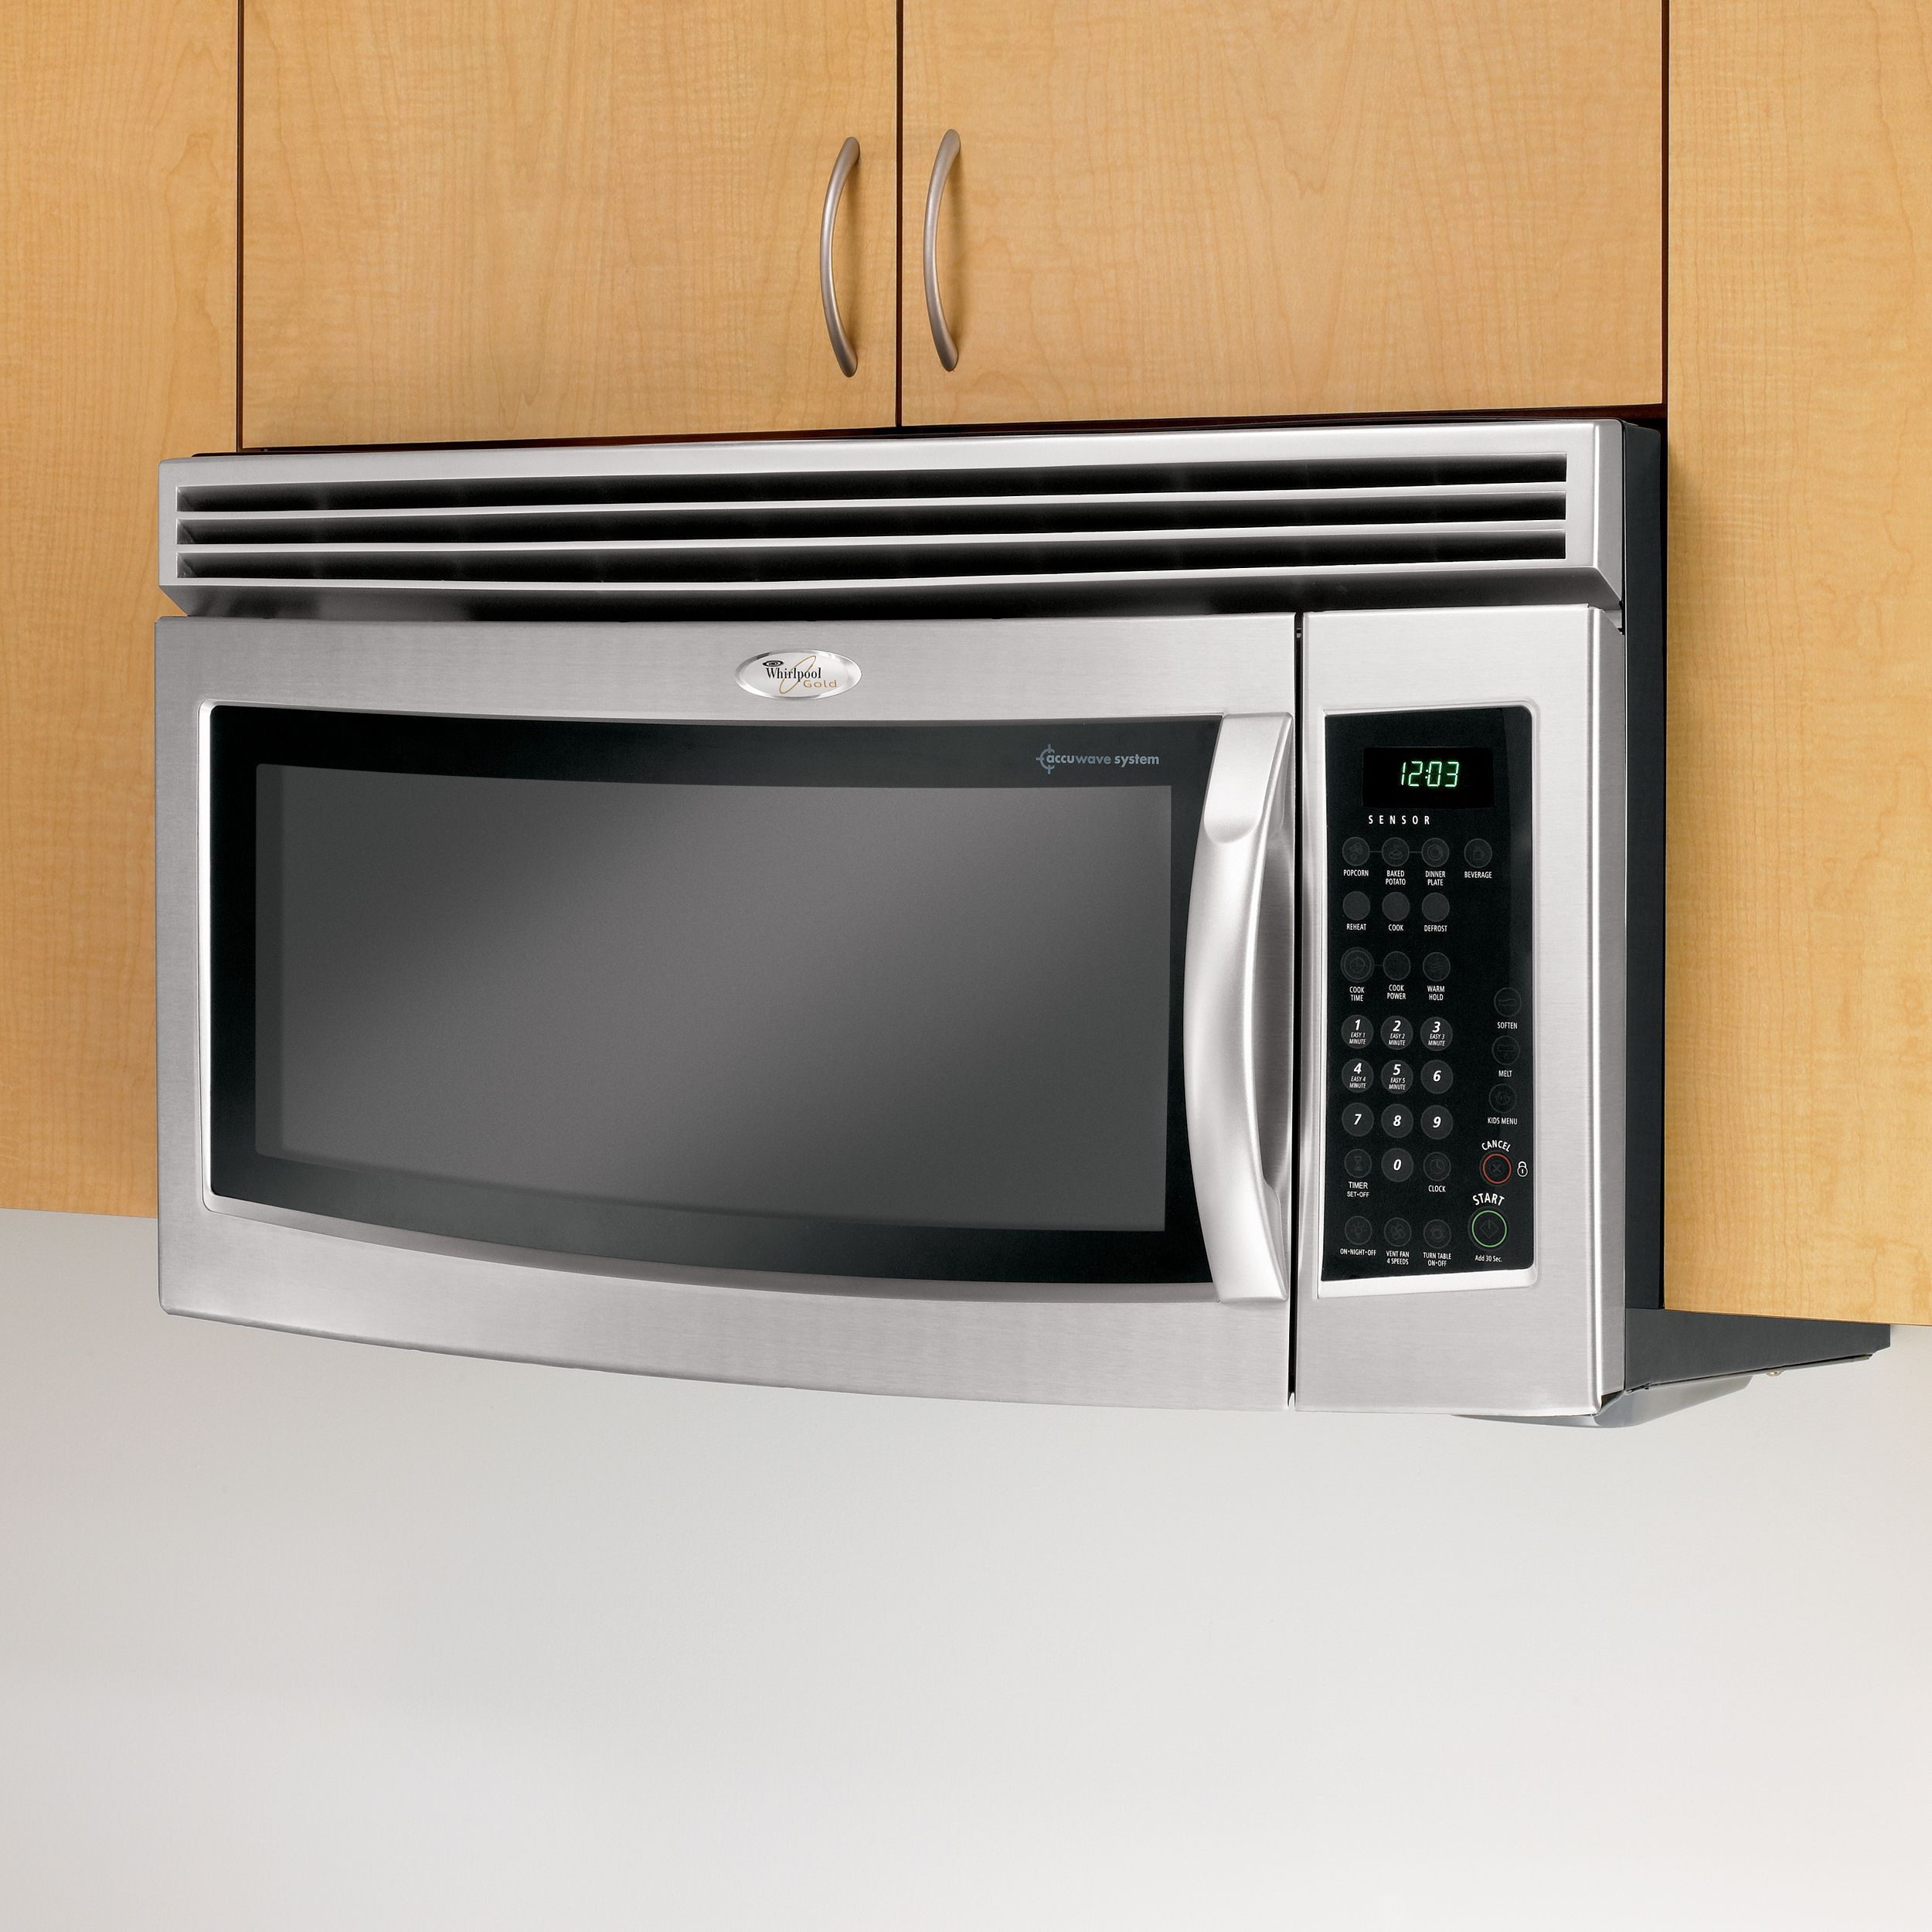 hight resolution of whirlpool microwave hood wiring diagram model gh5184xps3 design